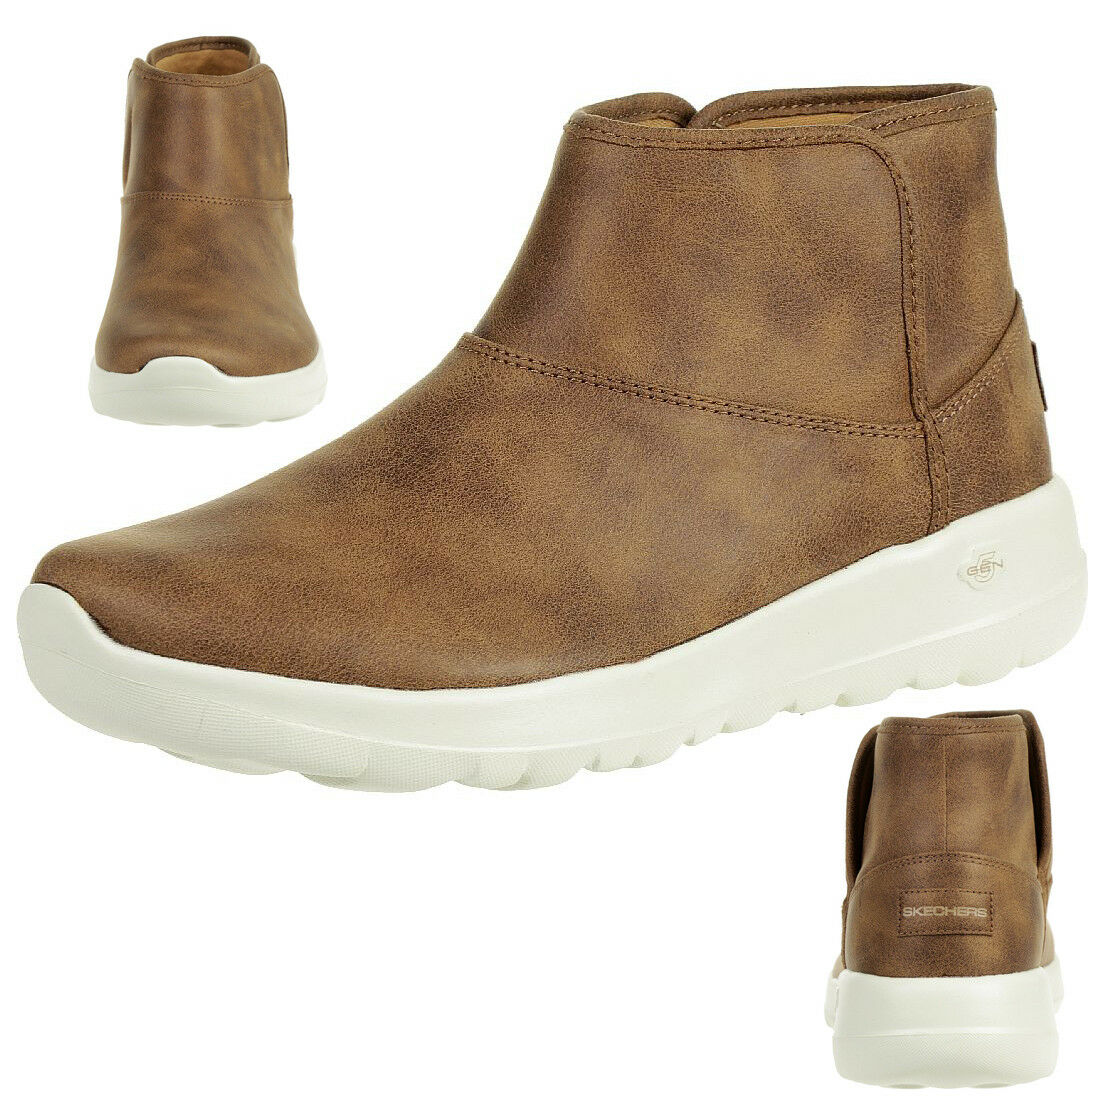 Skechers on the go Joy Harvest botas señora invierno zapatos csnt